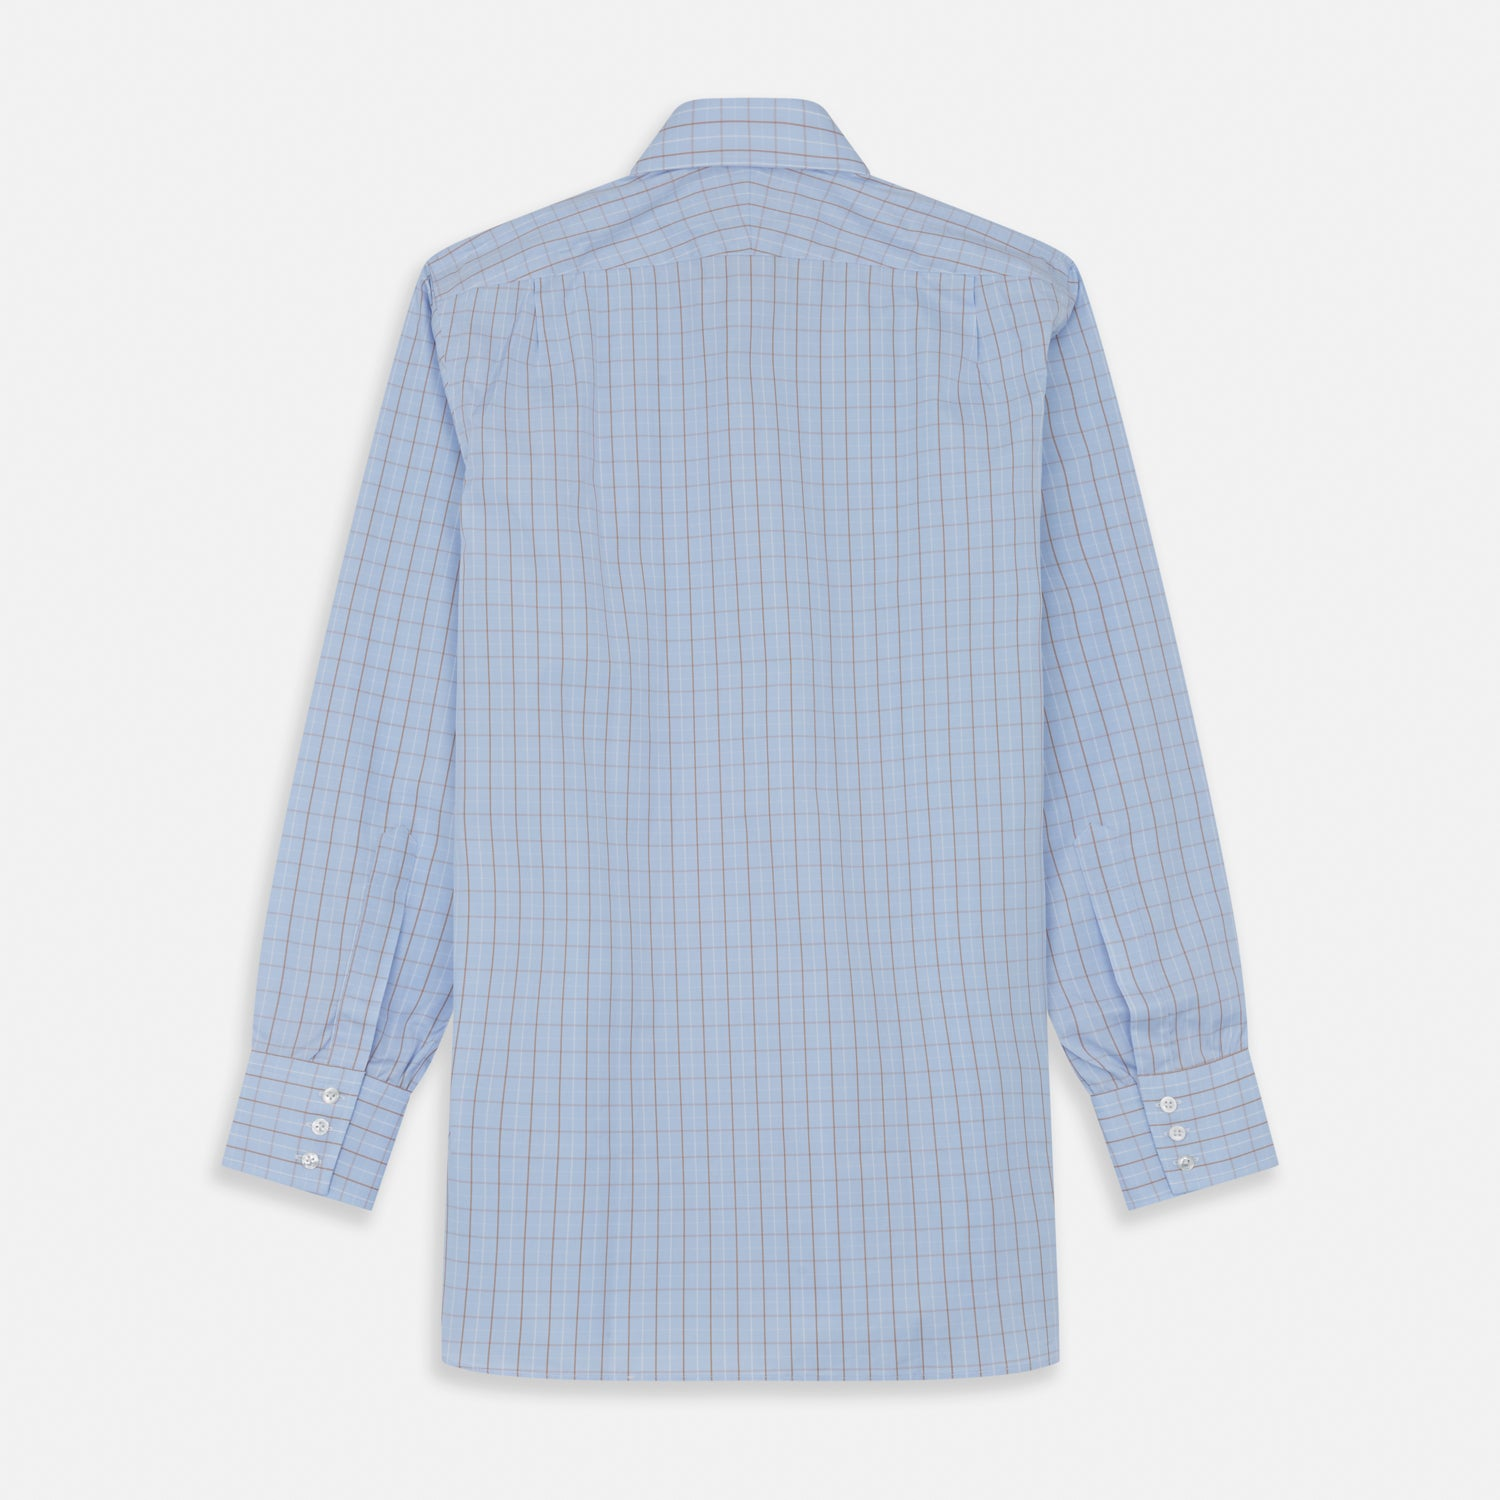 Beige Graph Check Regular Fit Shirt with T&A Collar and 3-Button Cuffs